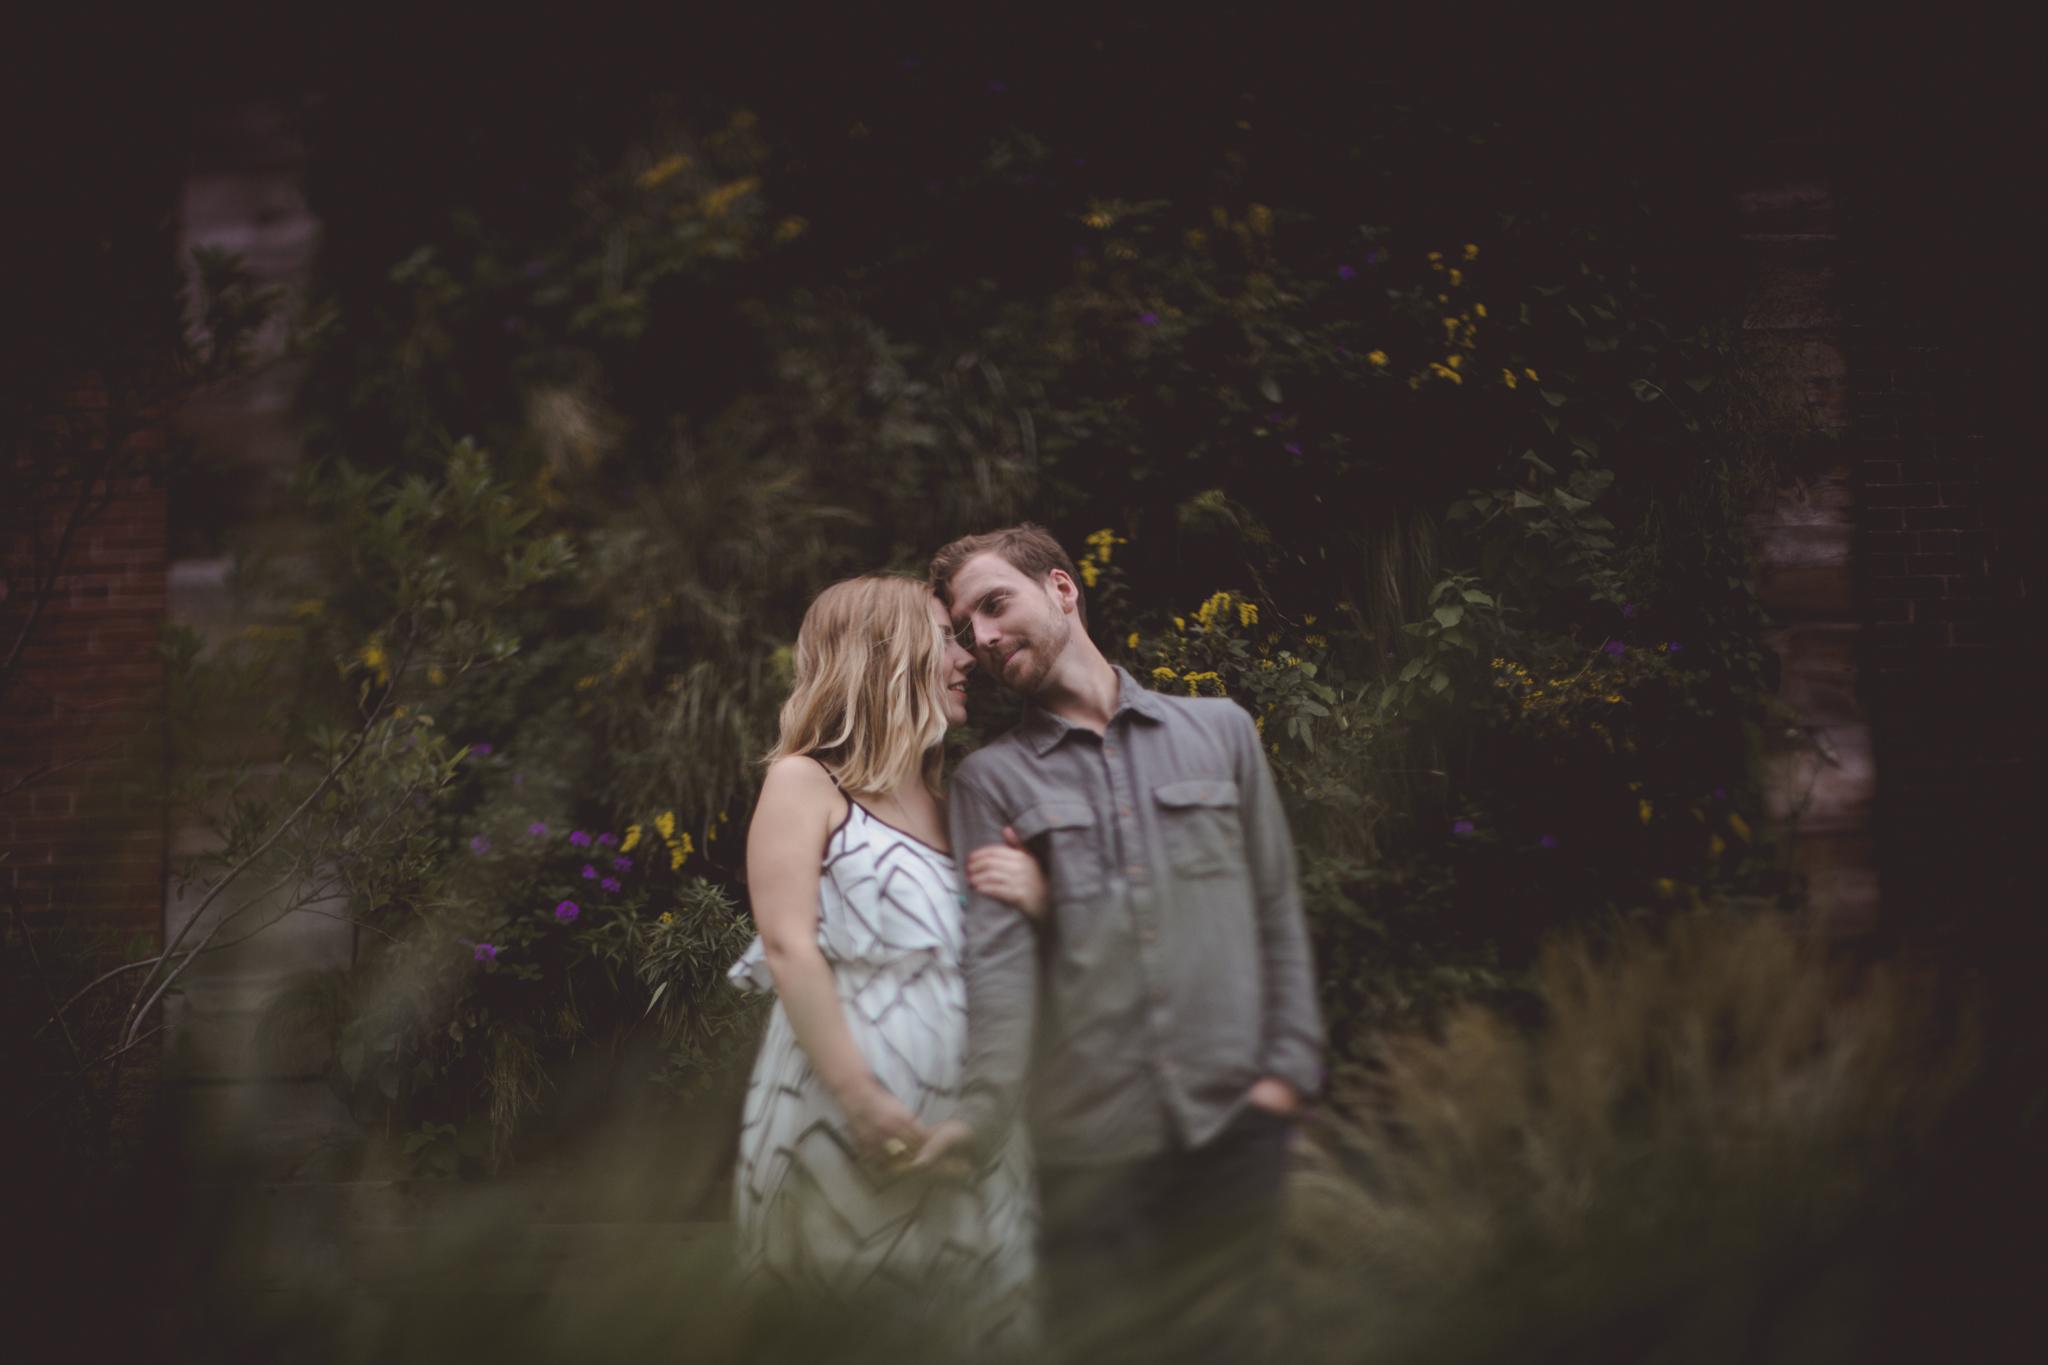 Cambria_Philly_Engagement_Photography-7661.jpg